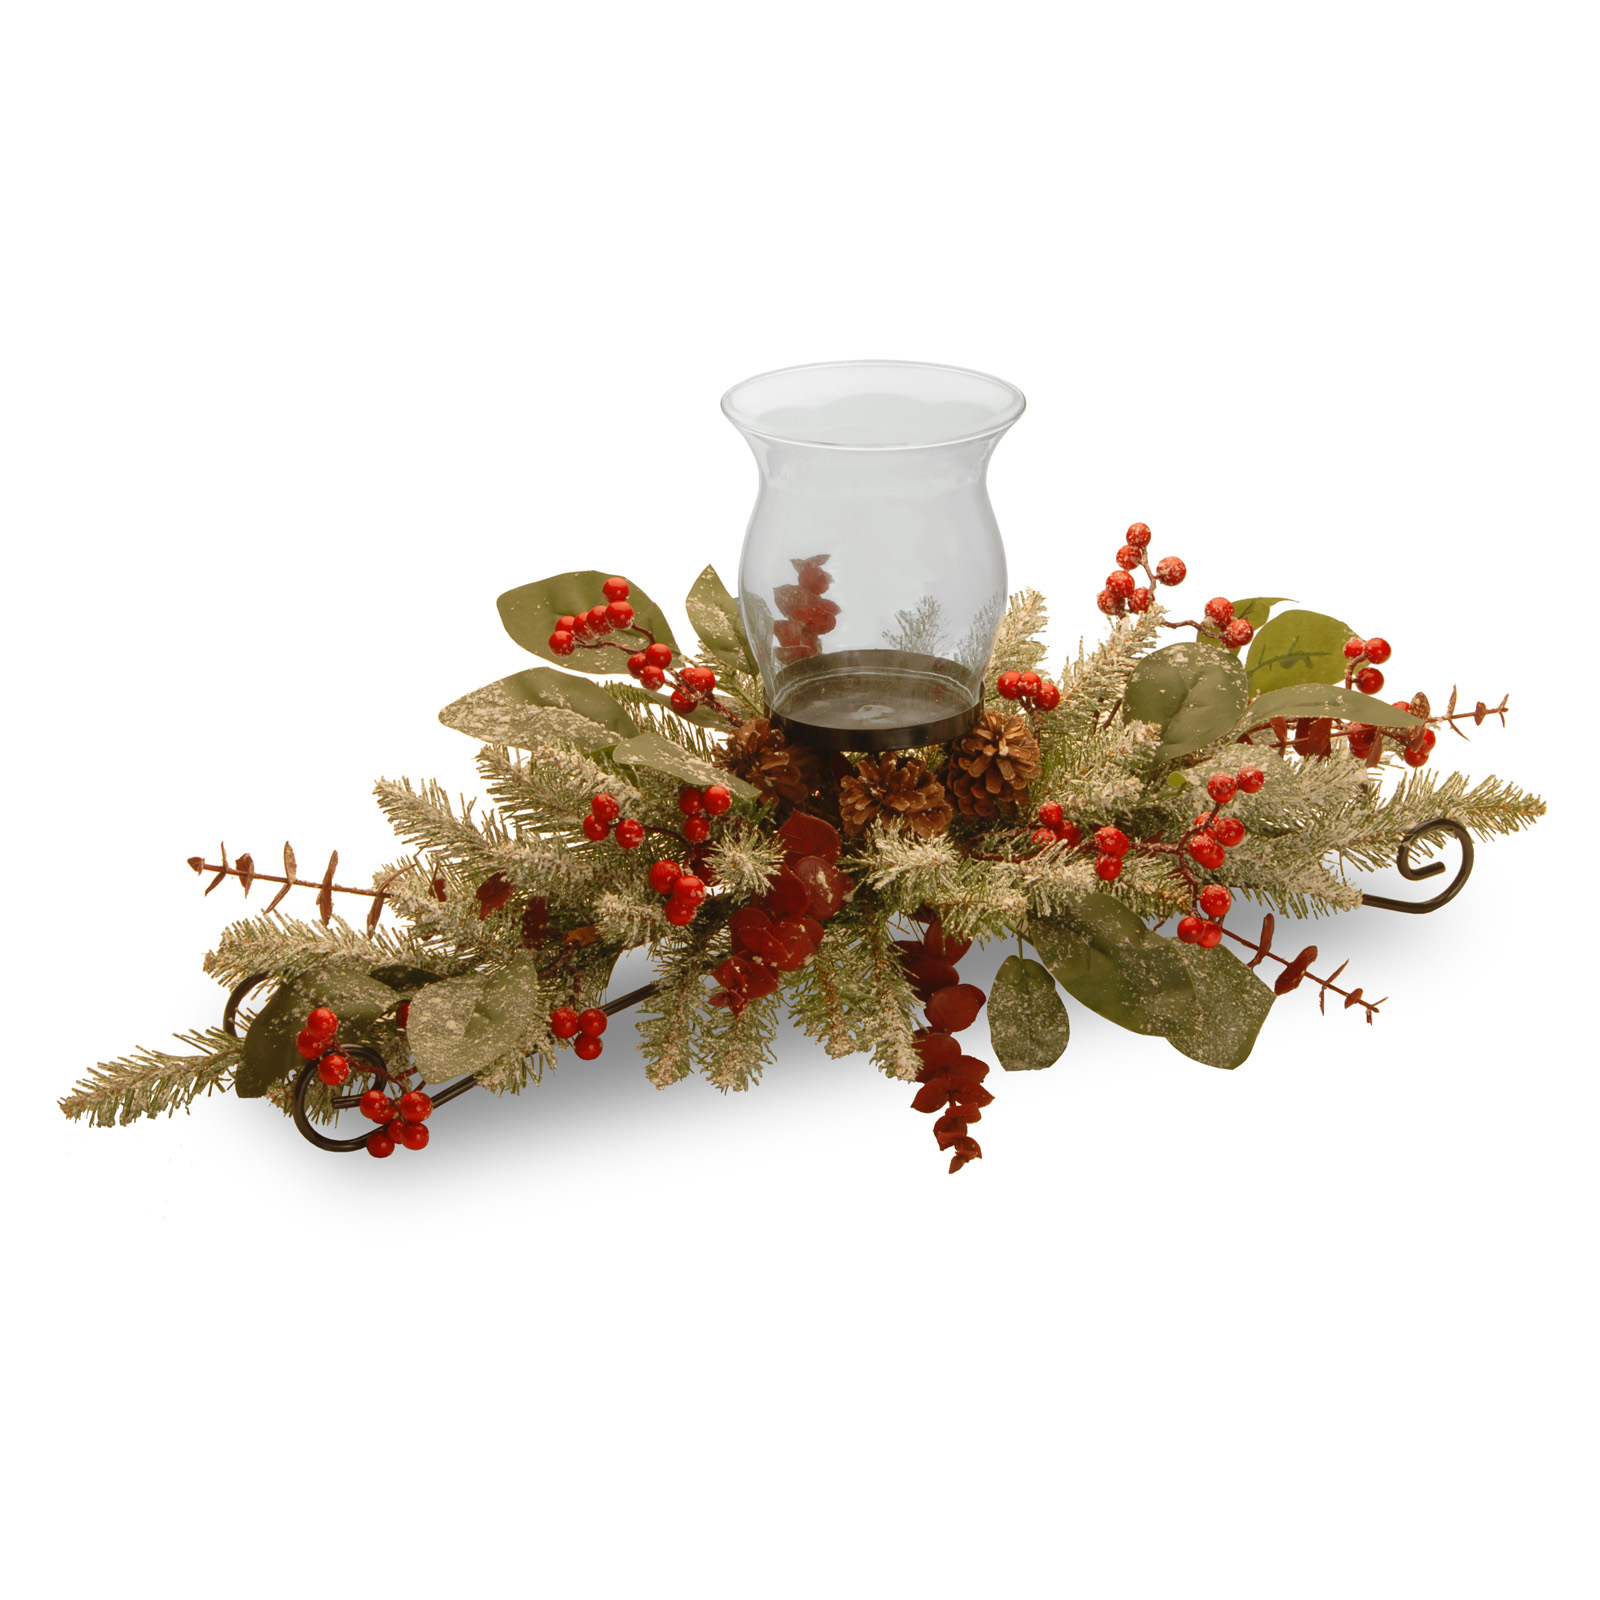 In eucalyptus candle holder centerpiece christmas